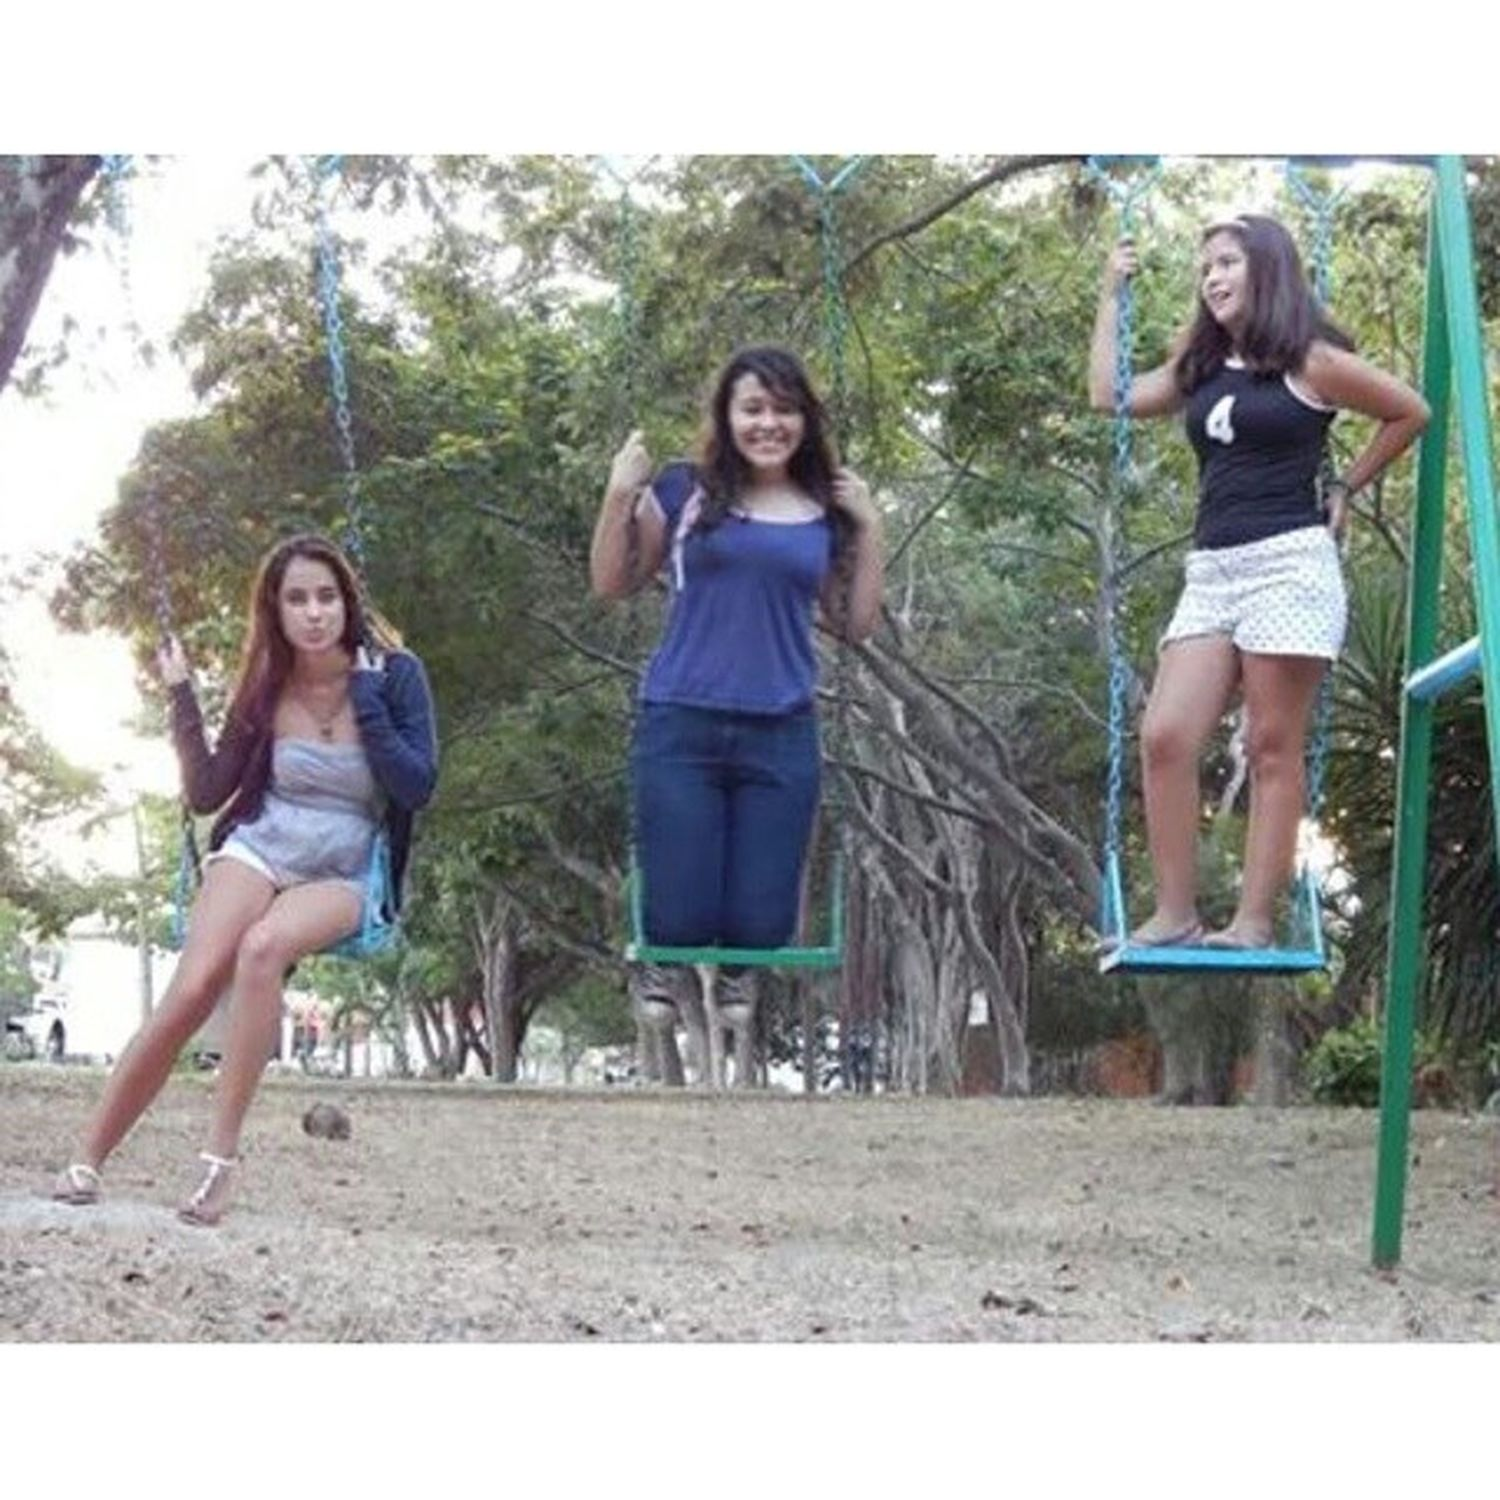 Playing like kids • NormalPicture Pic Photos Shots CrazyGirls PicOfDay PictureOfDay LikeforLike LikeForSpam SpamForSpam :)